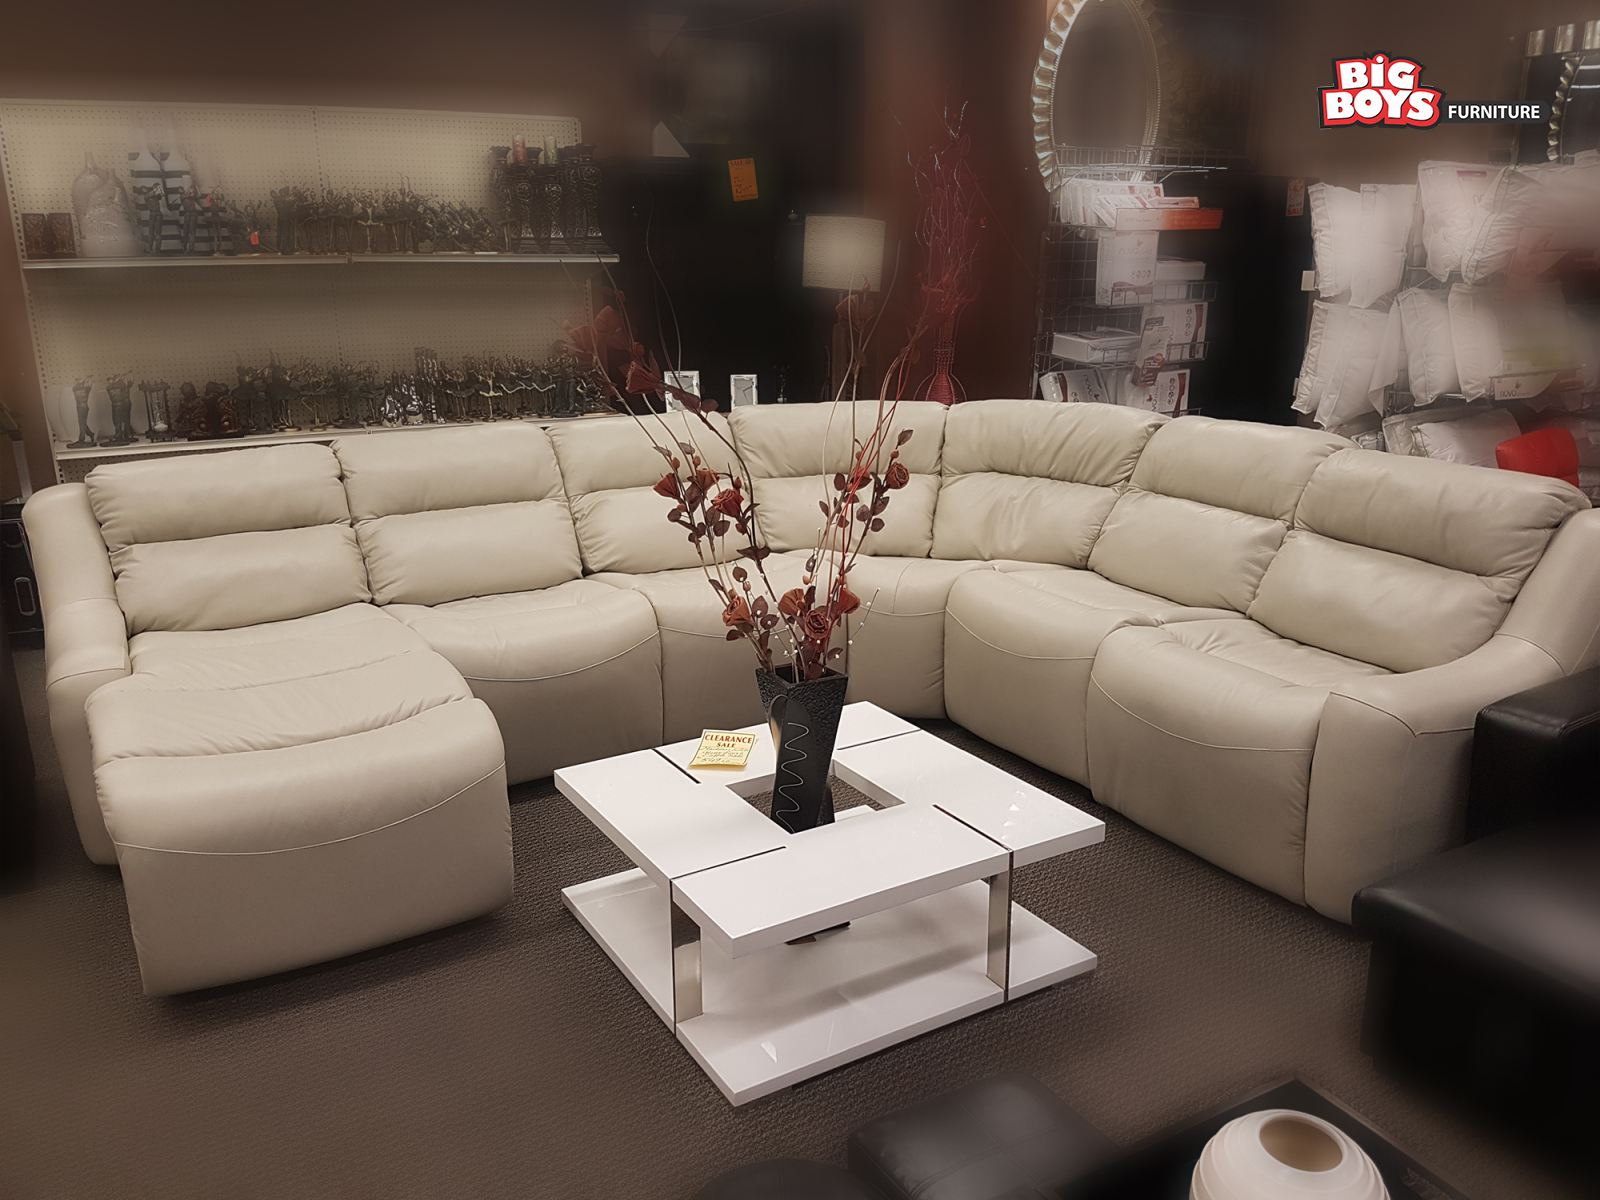 Sofa Sets by Big Boys furniture (4) - Big Boys Furniture